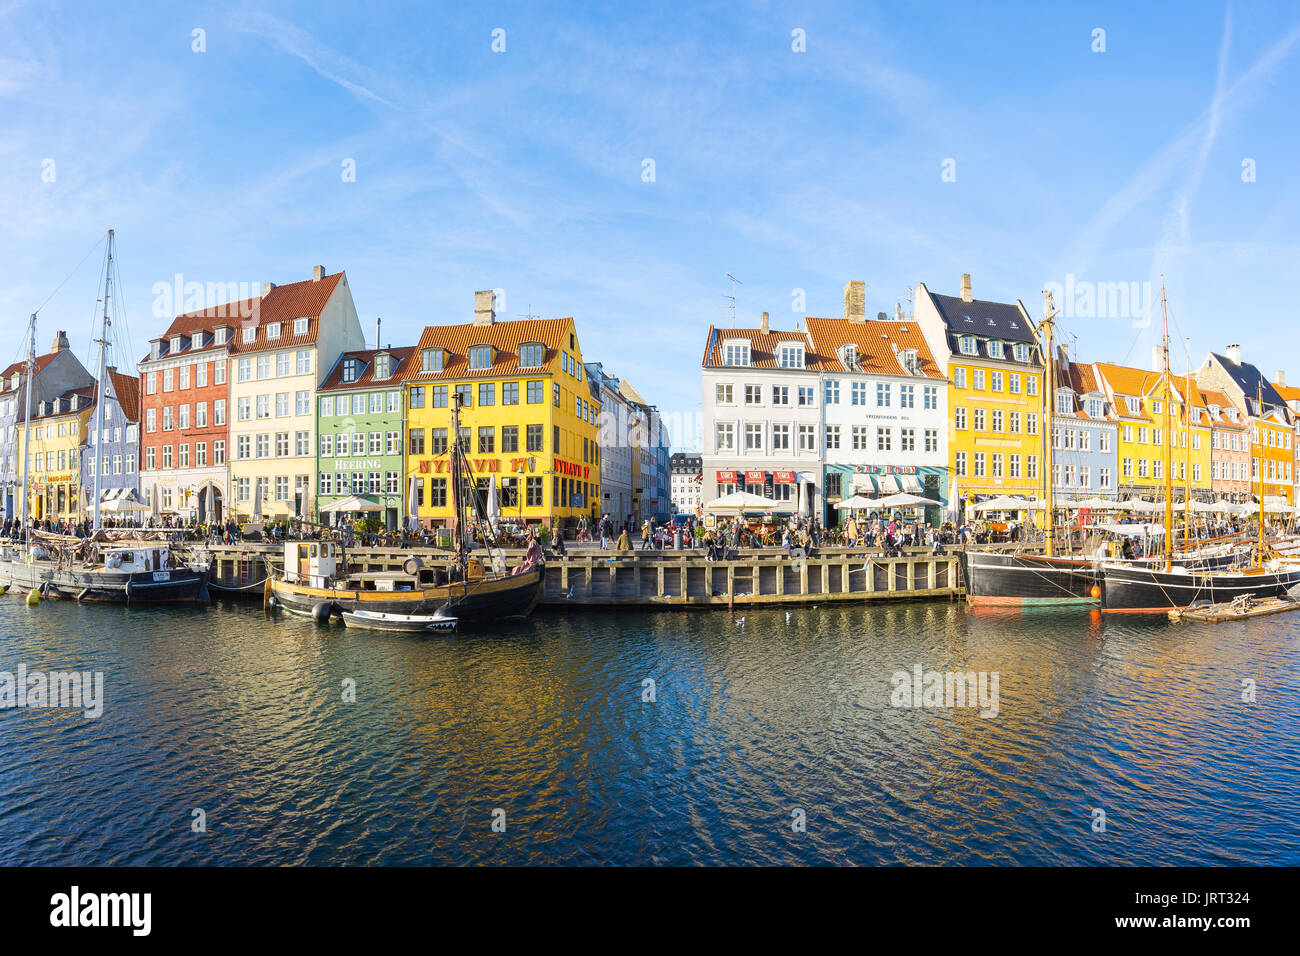 Copenhagen, Denmark - May 1, 2017: Nyhavn with its picturesque harbor with old sailing ships bobbing on the canals' water, and colourful facades of ol - Stock Image